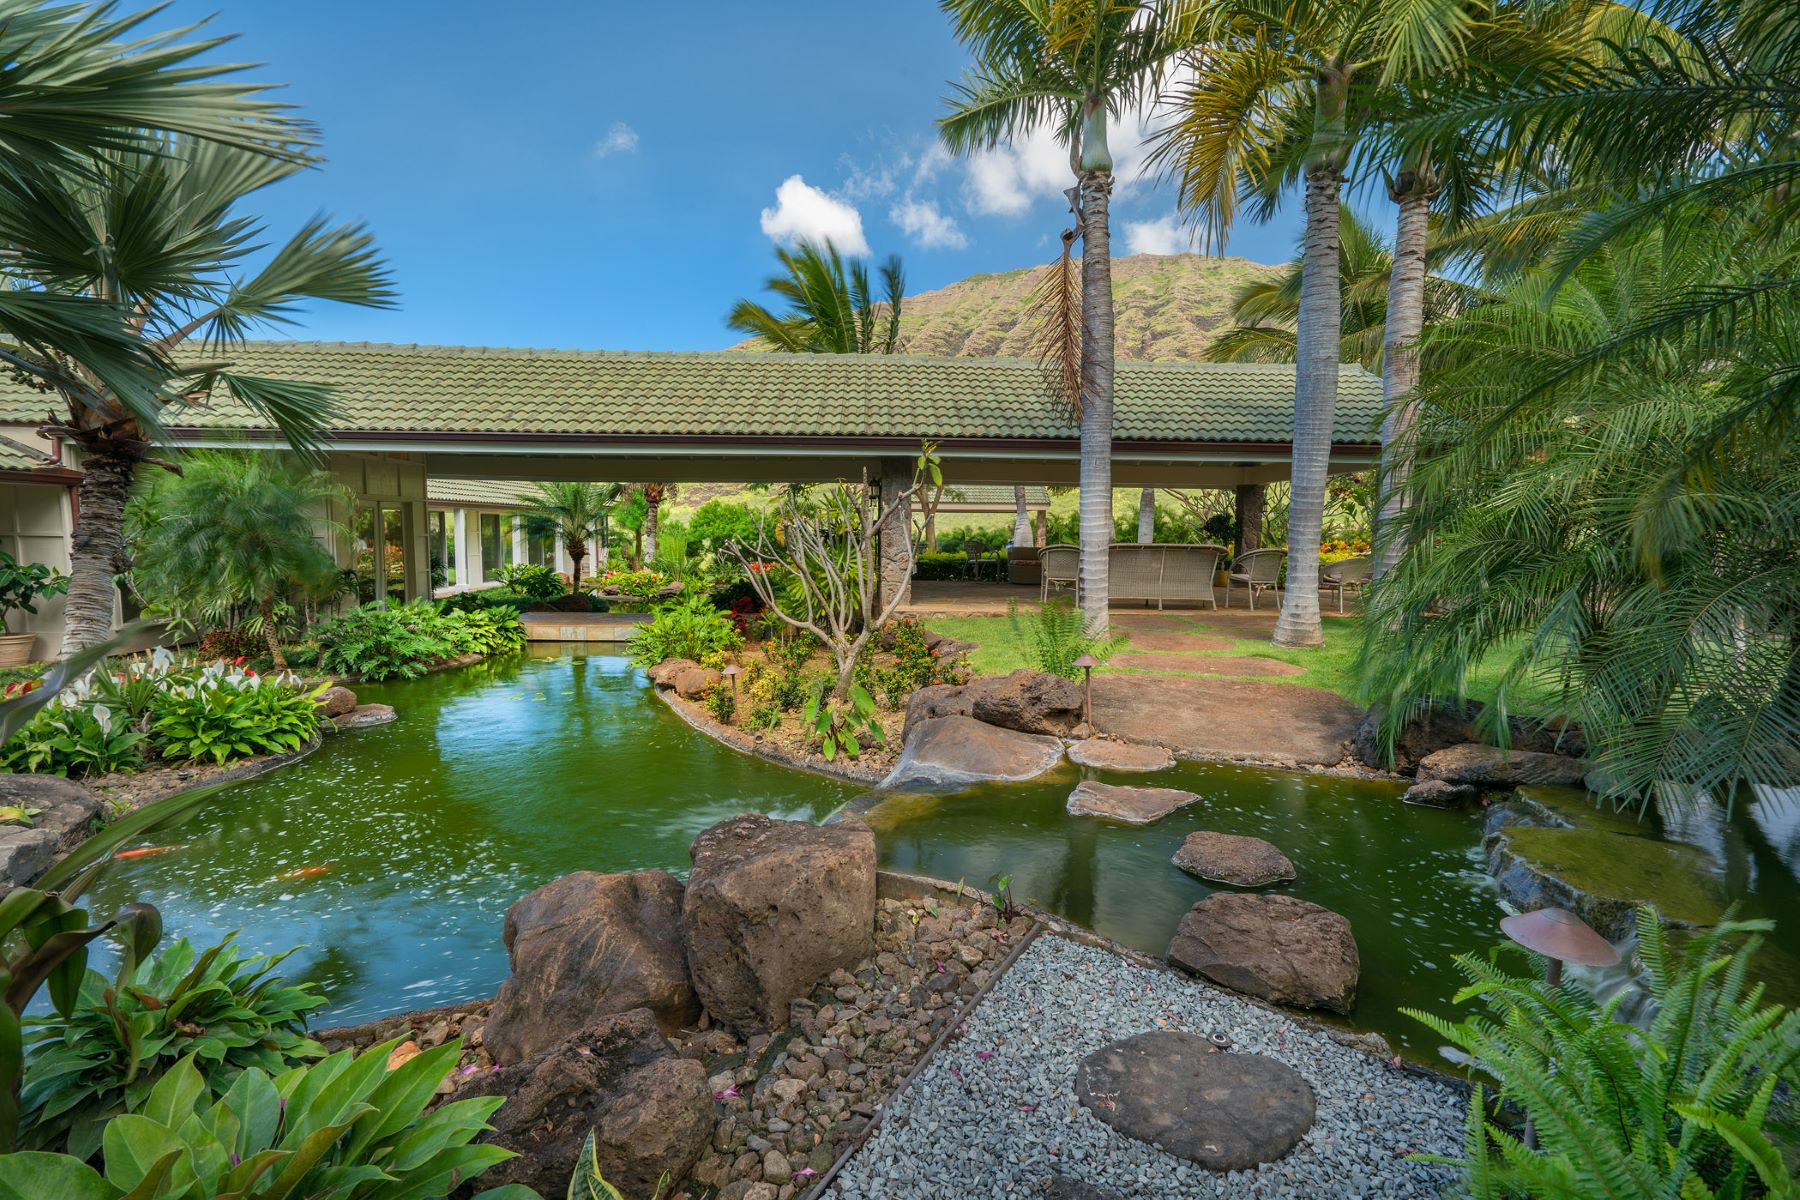 Additional photo for property listing at Award Winning Private Estate with Ocean Views 84-870 Alahele Street Waianae, Hawaii 96792 United States